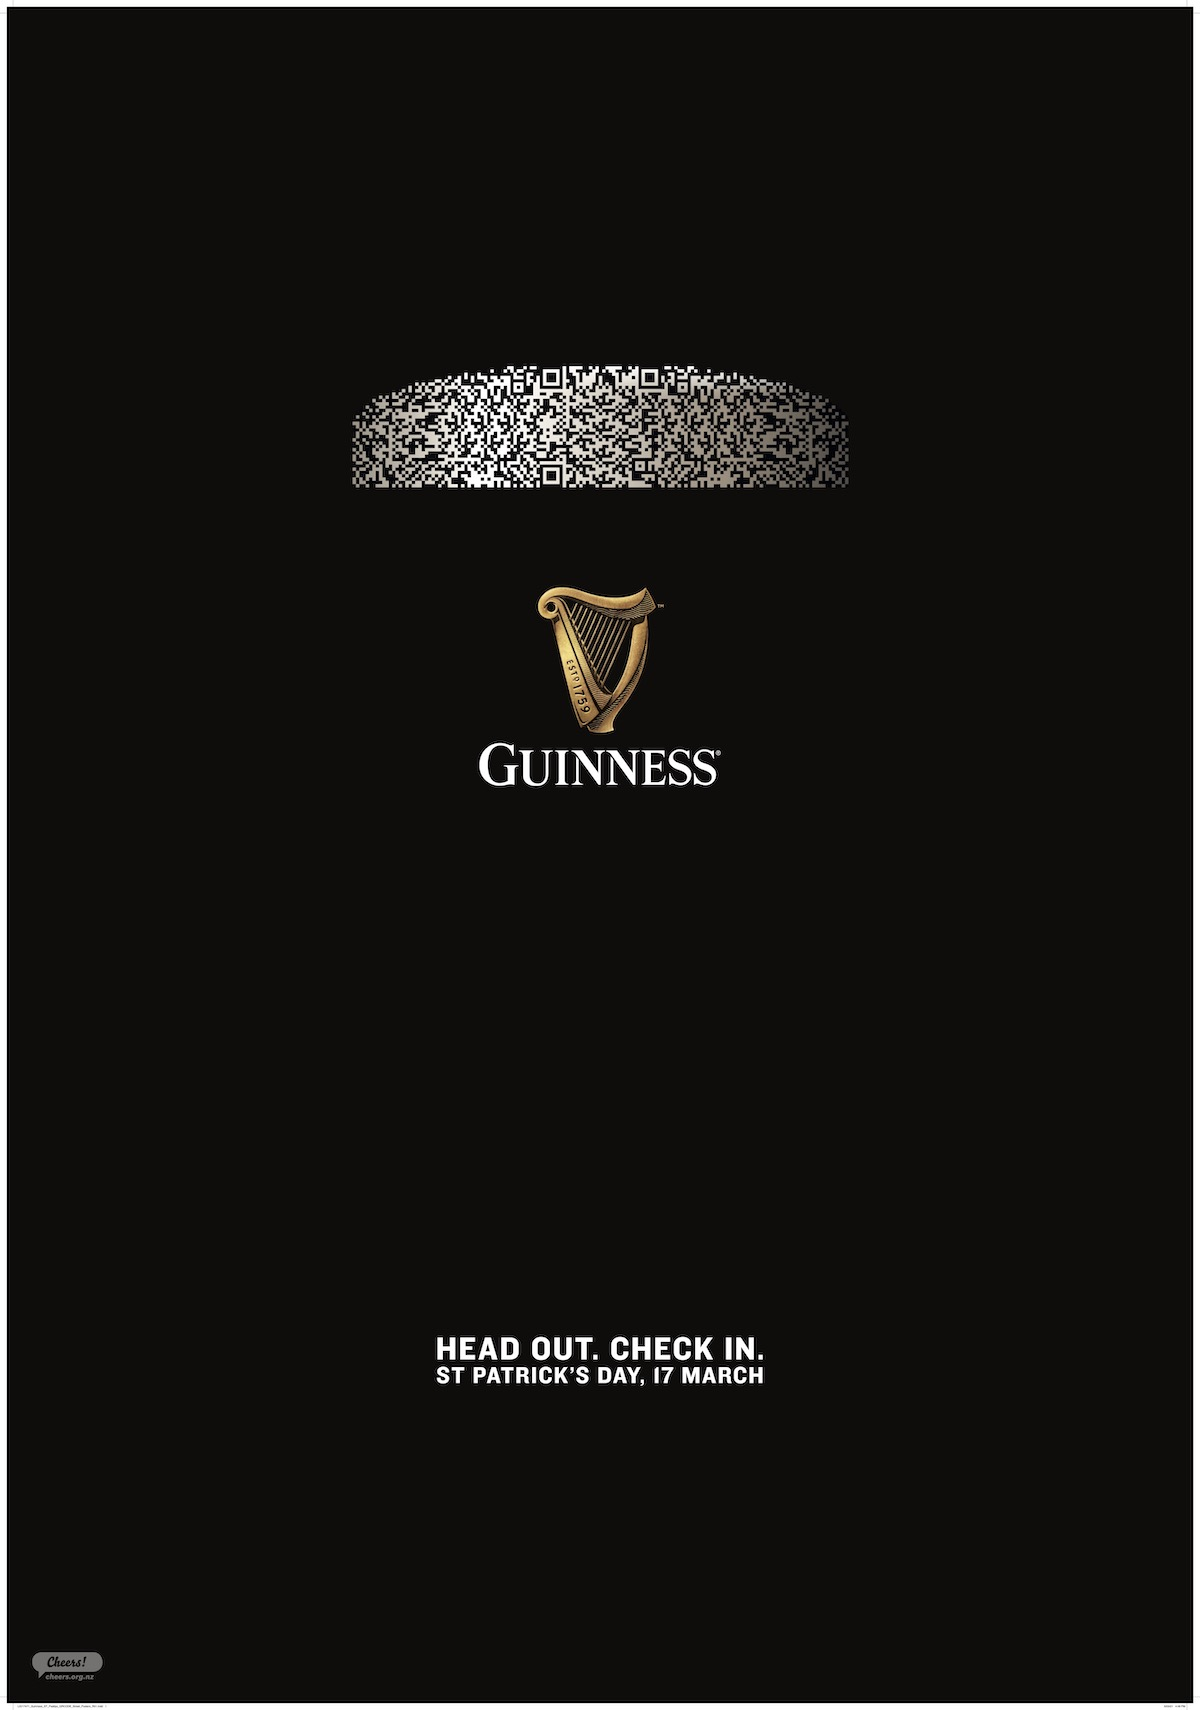 Guinness urges Kiwis to celebrate St Paddy's Day responsibly in new work via Special Group NZ